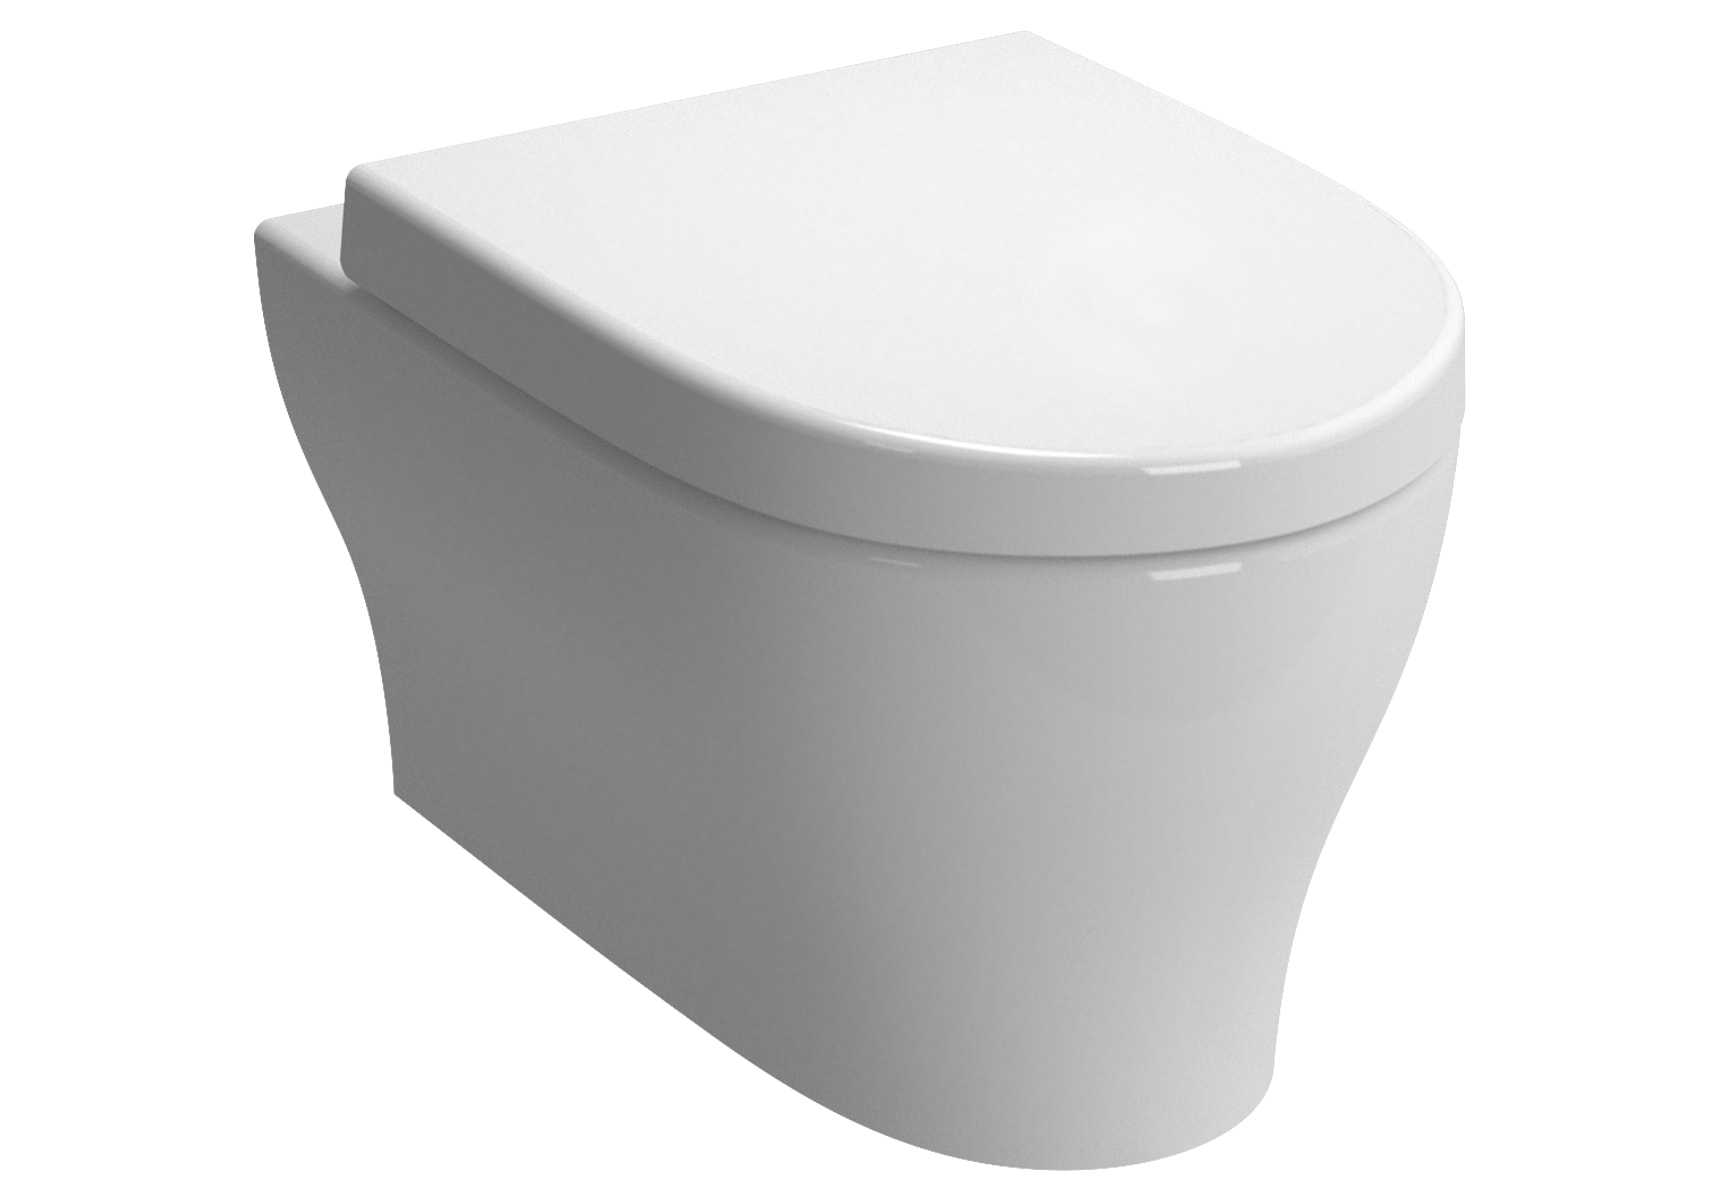 Bella Wall-Hung WC Pan, 54 cm, Without Nozzle, White